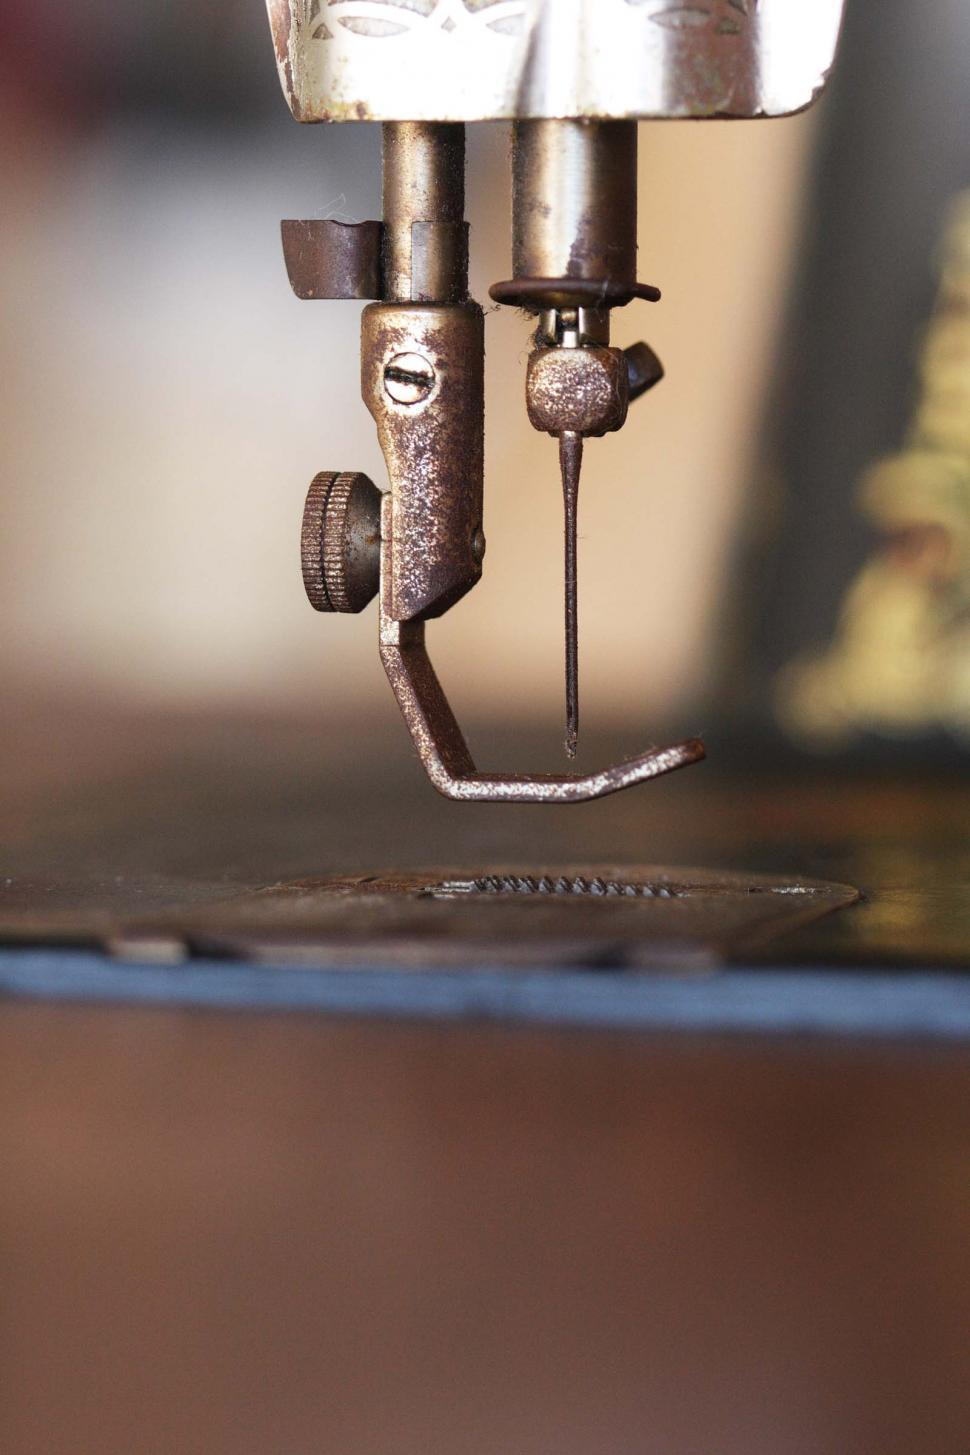 Download Free Stock Photo of Sewing machine foot